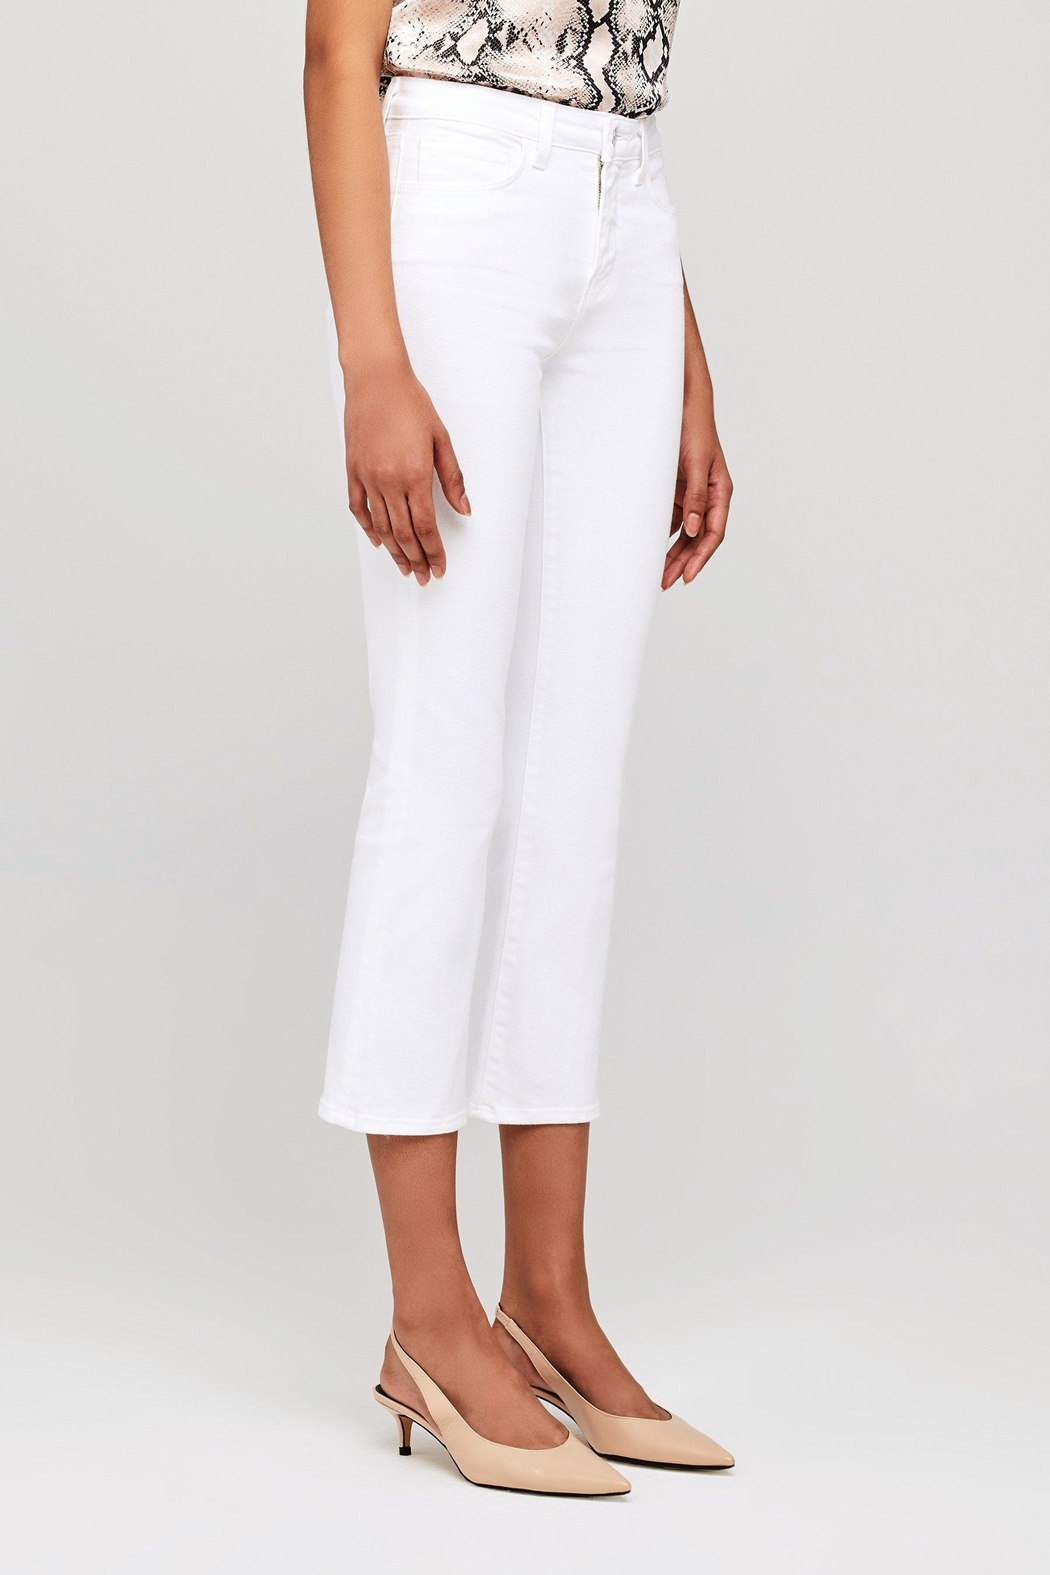 L'Agence Nadia High Rise Crop Straight Jean - Back Cropped Image